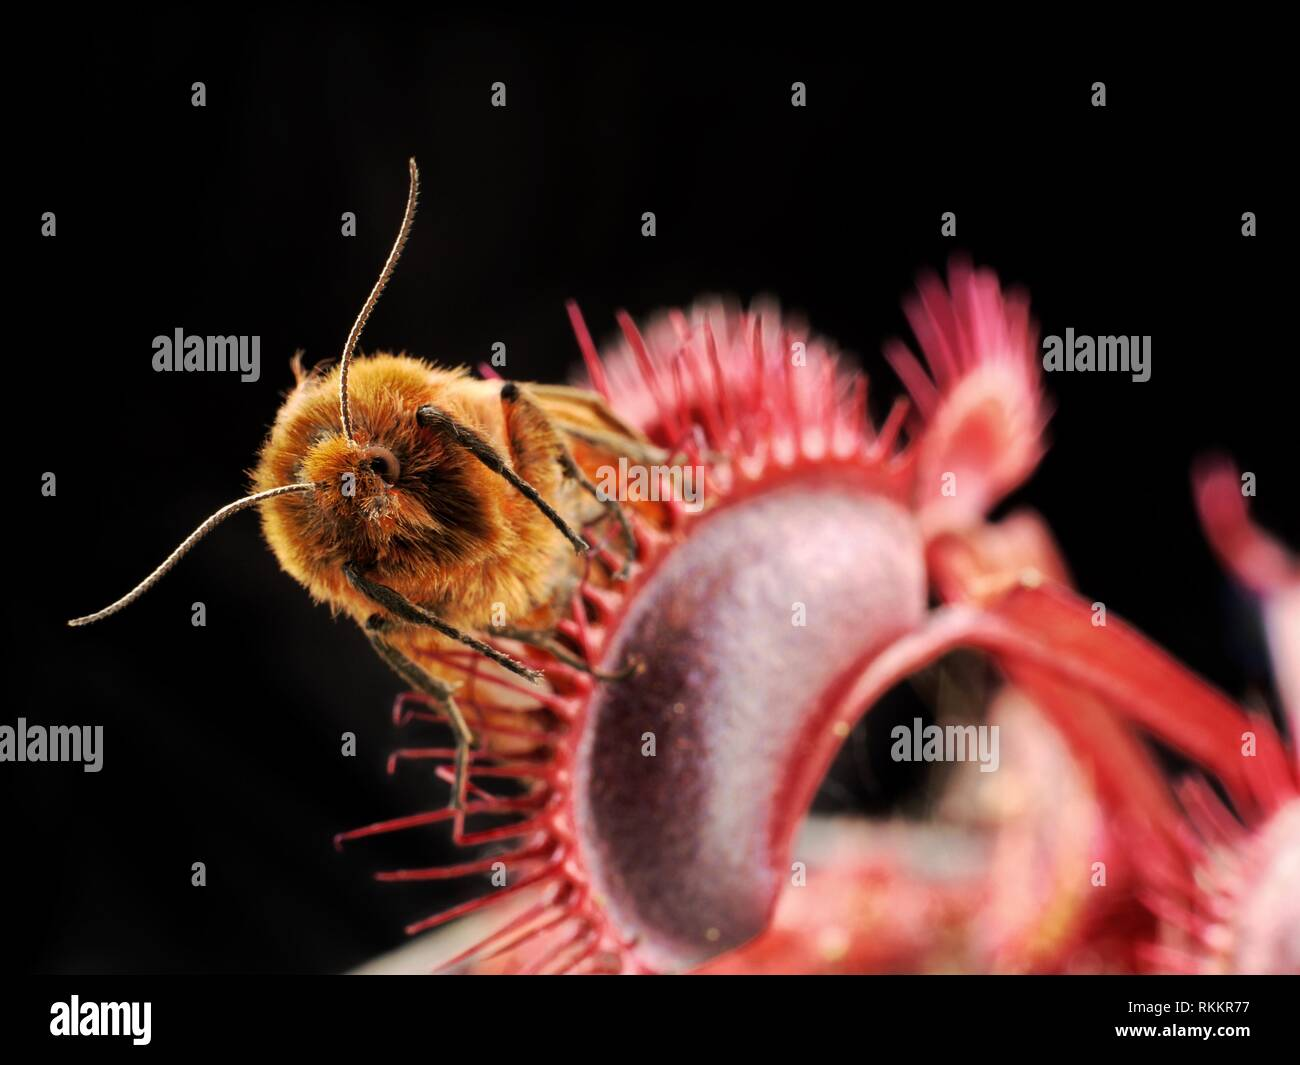 A moth is caught in a bright red carnivorous Venus Fly Trap plant, set against a black background. Stock Photo